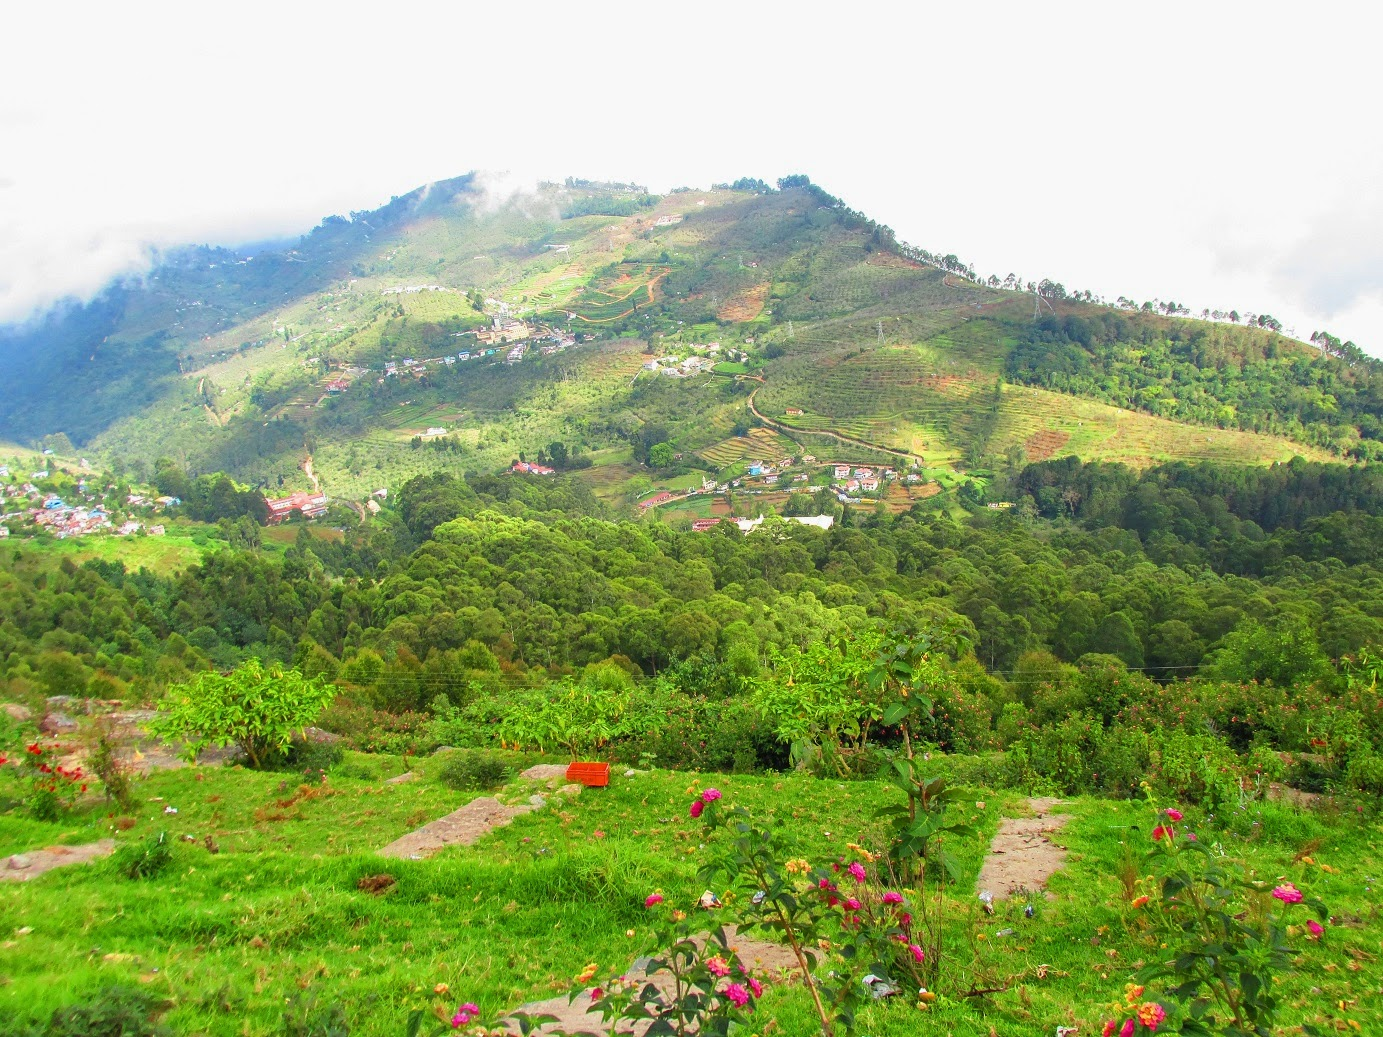 Kodaikanal India  city photos : Kodaikanal is one of the most important hill stations in India. People ...